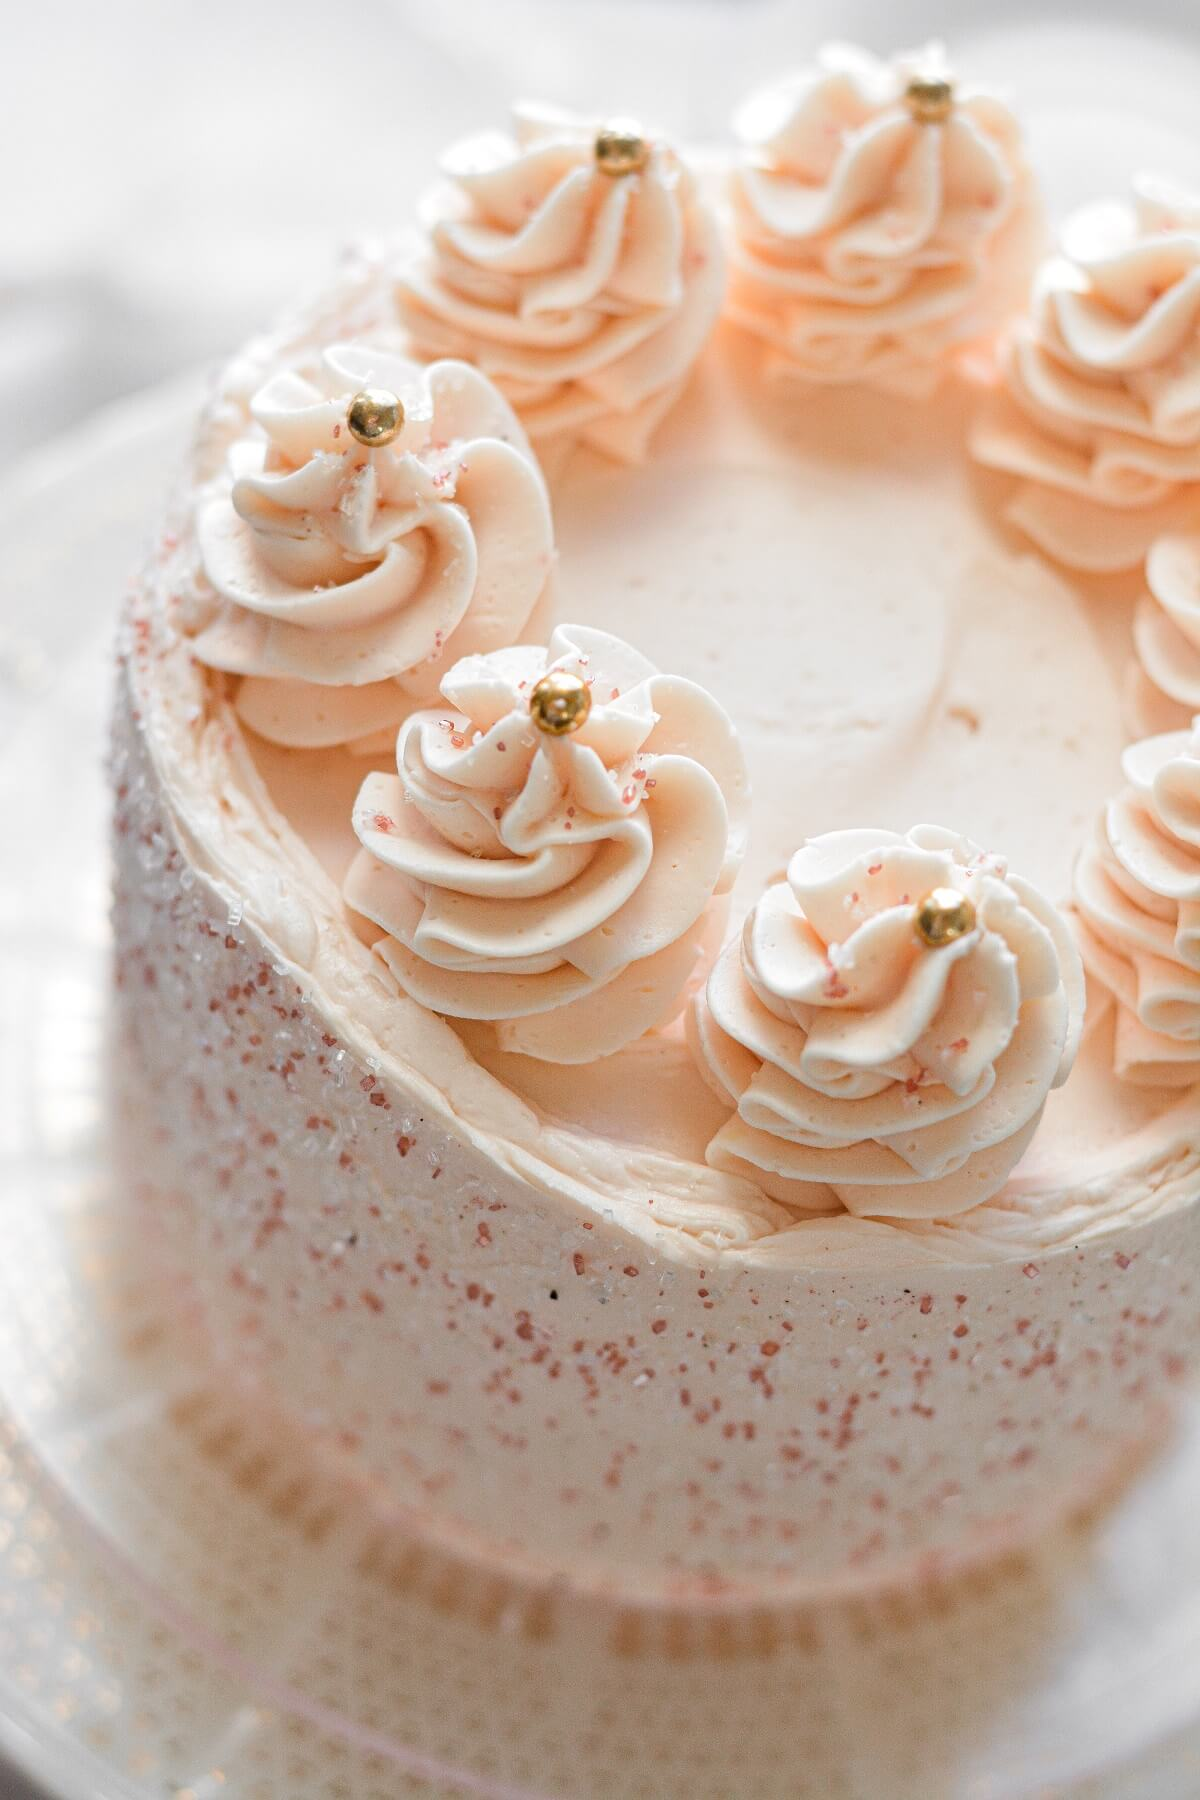 Pink champagne cake with sparkling sugar, piped swirls of buttercream, and gold sugar pearls.